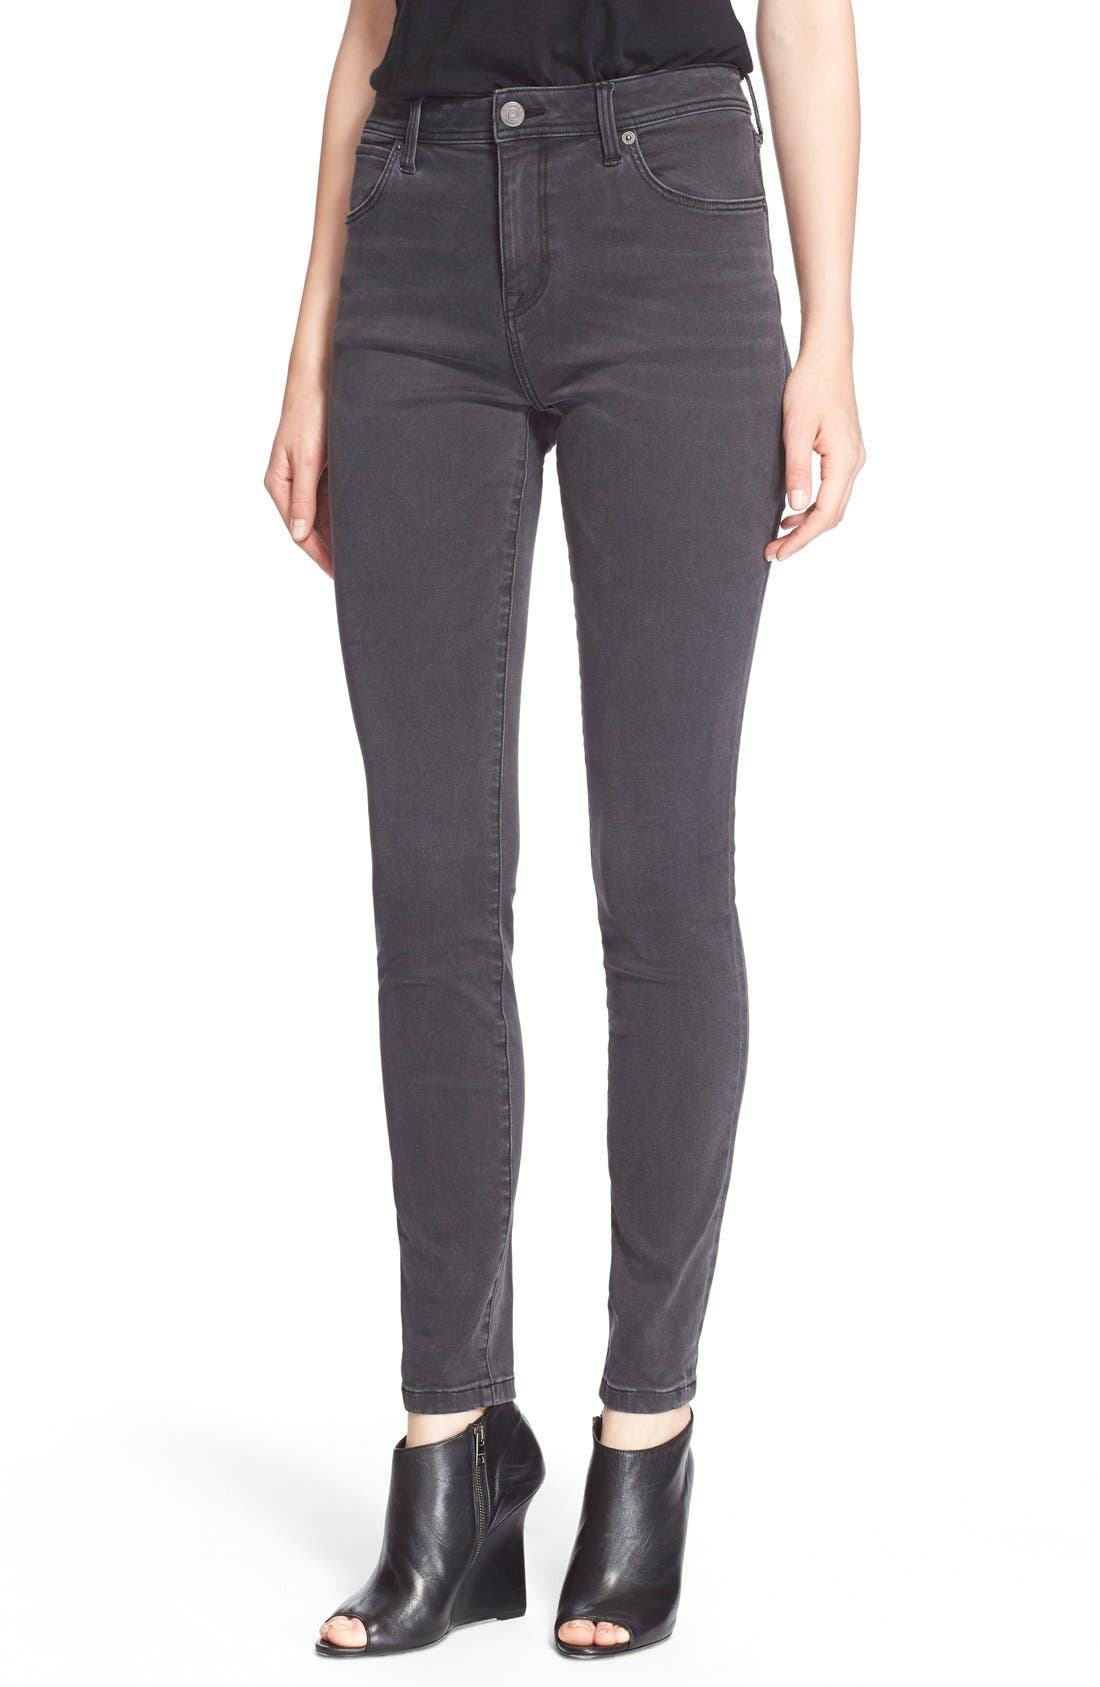 Main Image - Burberry Brit Skinny Jeans (Mid Grey)